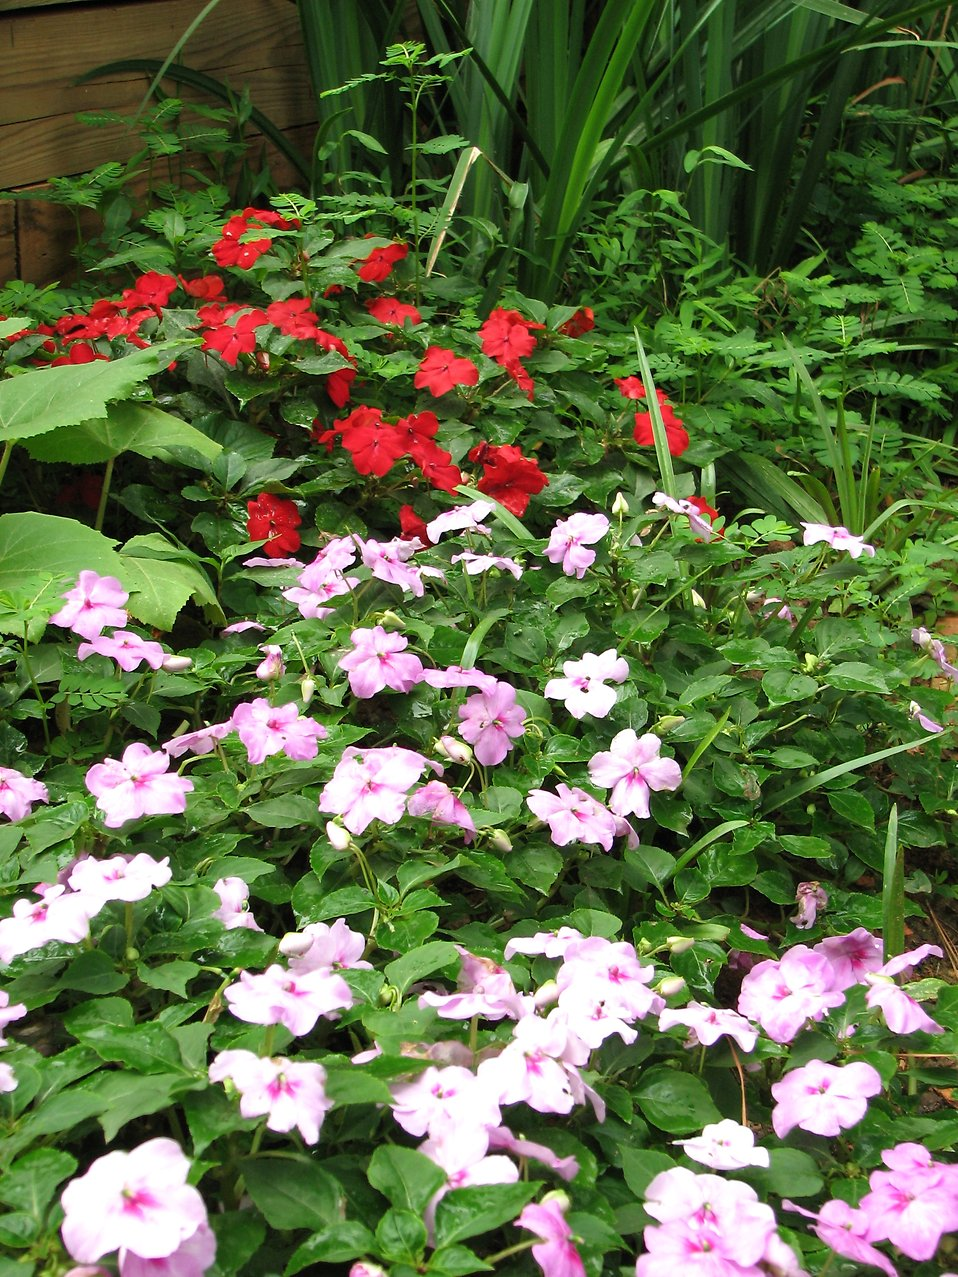 Red and purple flowers in a garden : Free Stock Photo